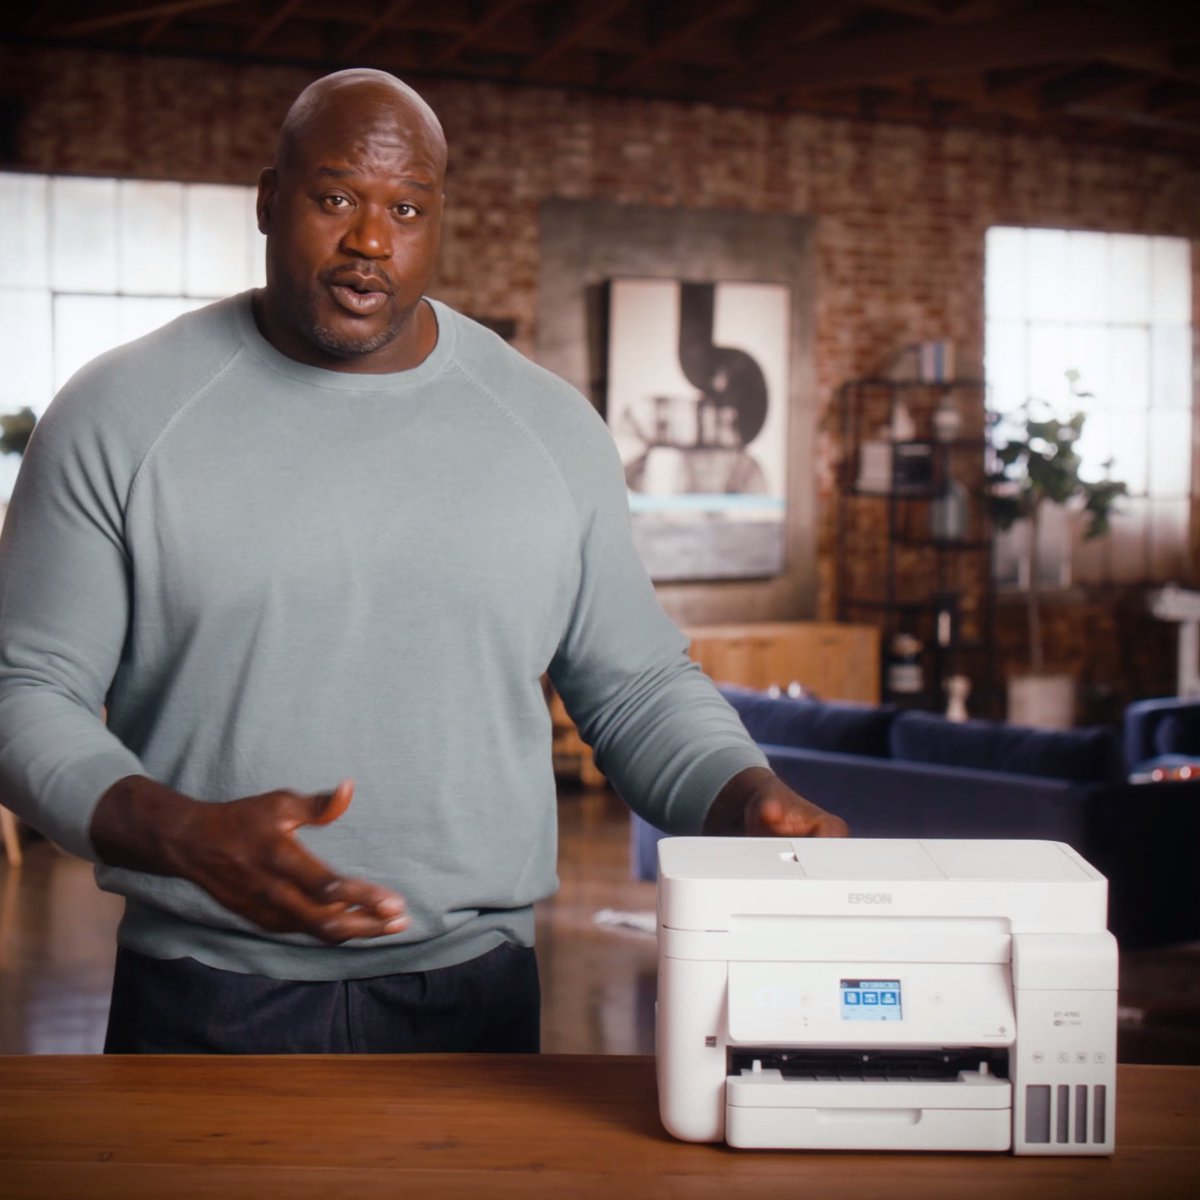 Expensive ink cartridges are history! New year, new printer. Welcome to the new school. 🎓 #EcoTank  #JustFillAndChill #Epson #Shaq #printer #behold #newyear